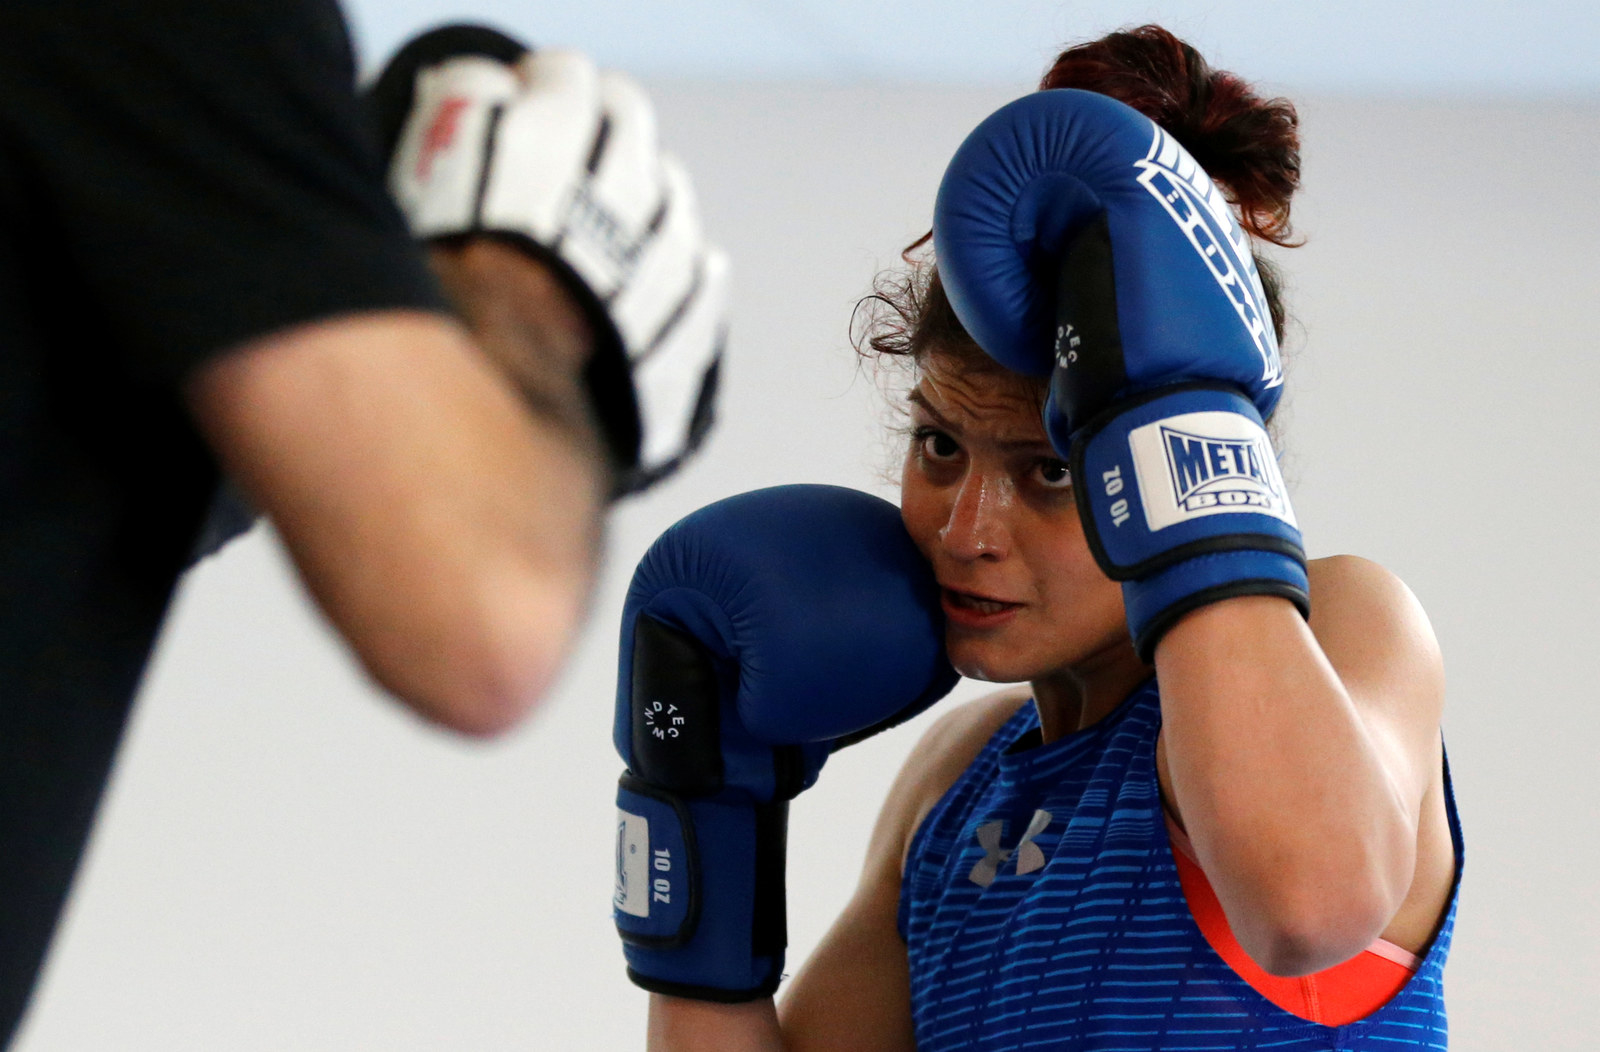 Iranian Boxer Sadaf Khadem Says She Will Remain In France Rather Than Face Arrest In Iran